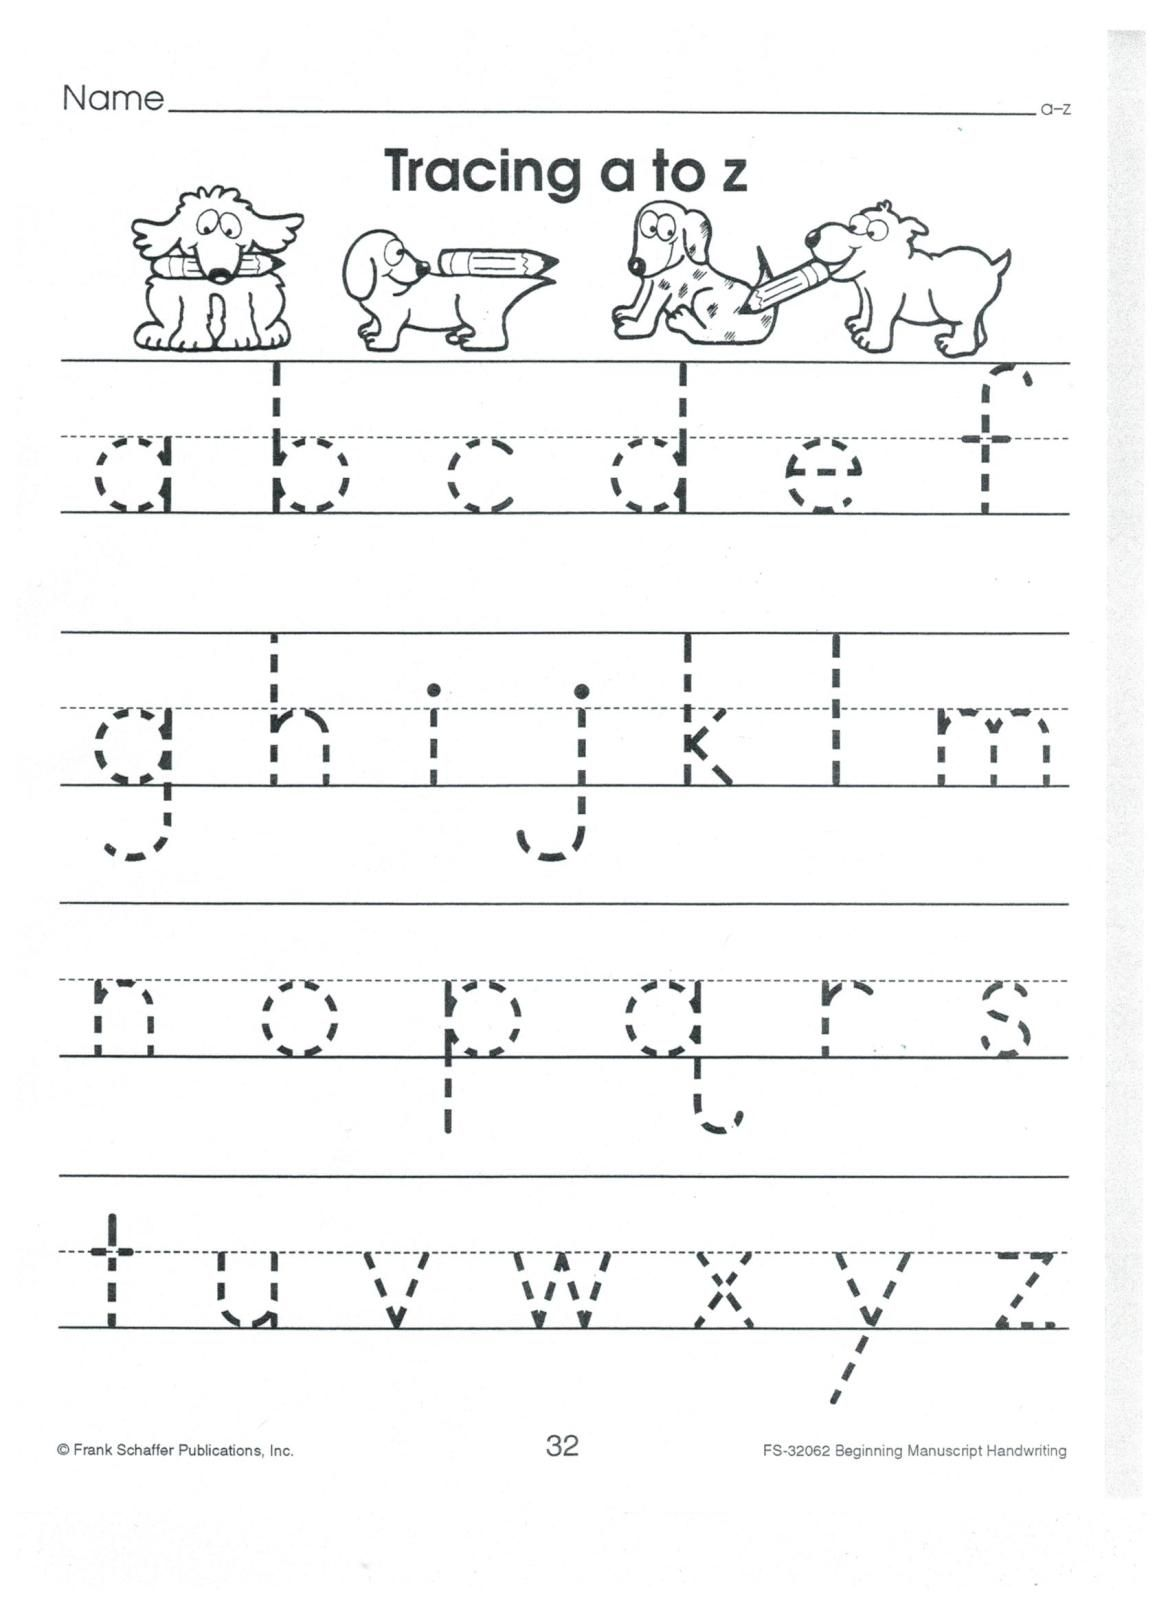 English Print Abc A To Z Lower Case 001 With Images Alphabet